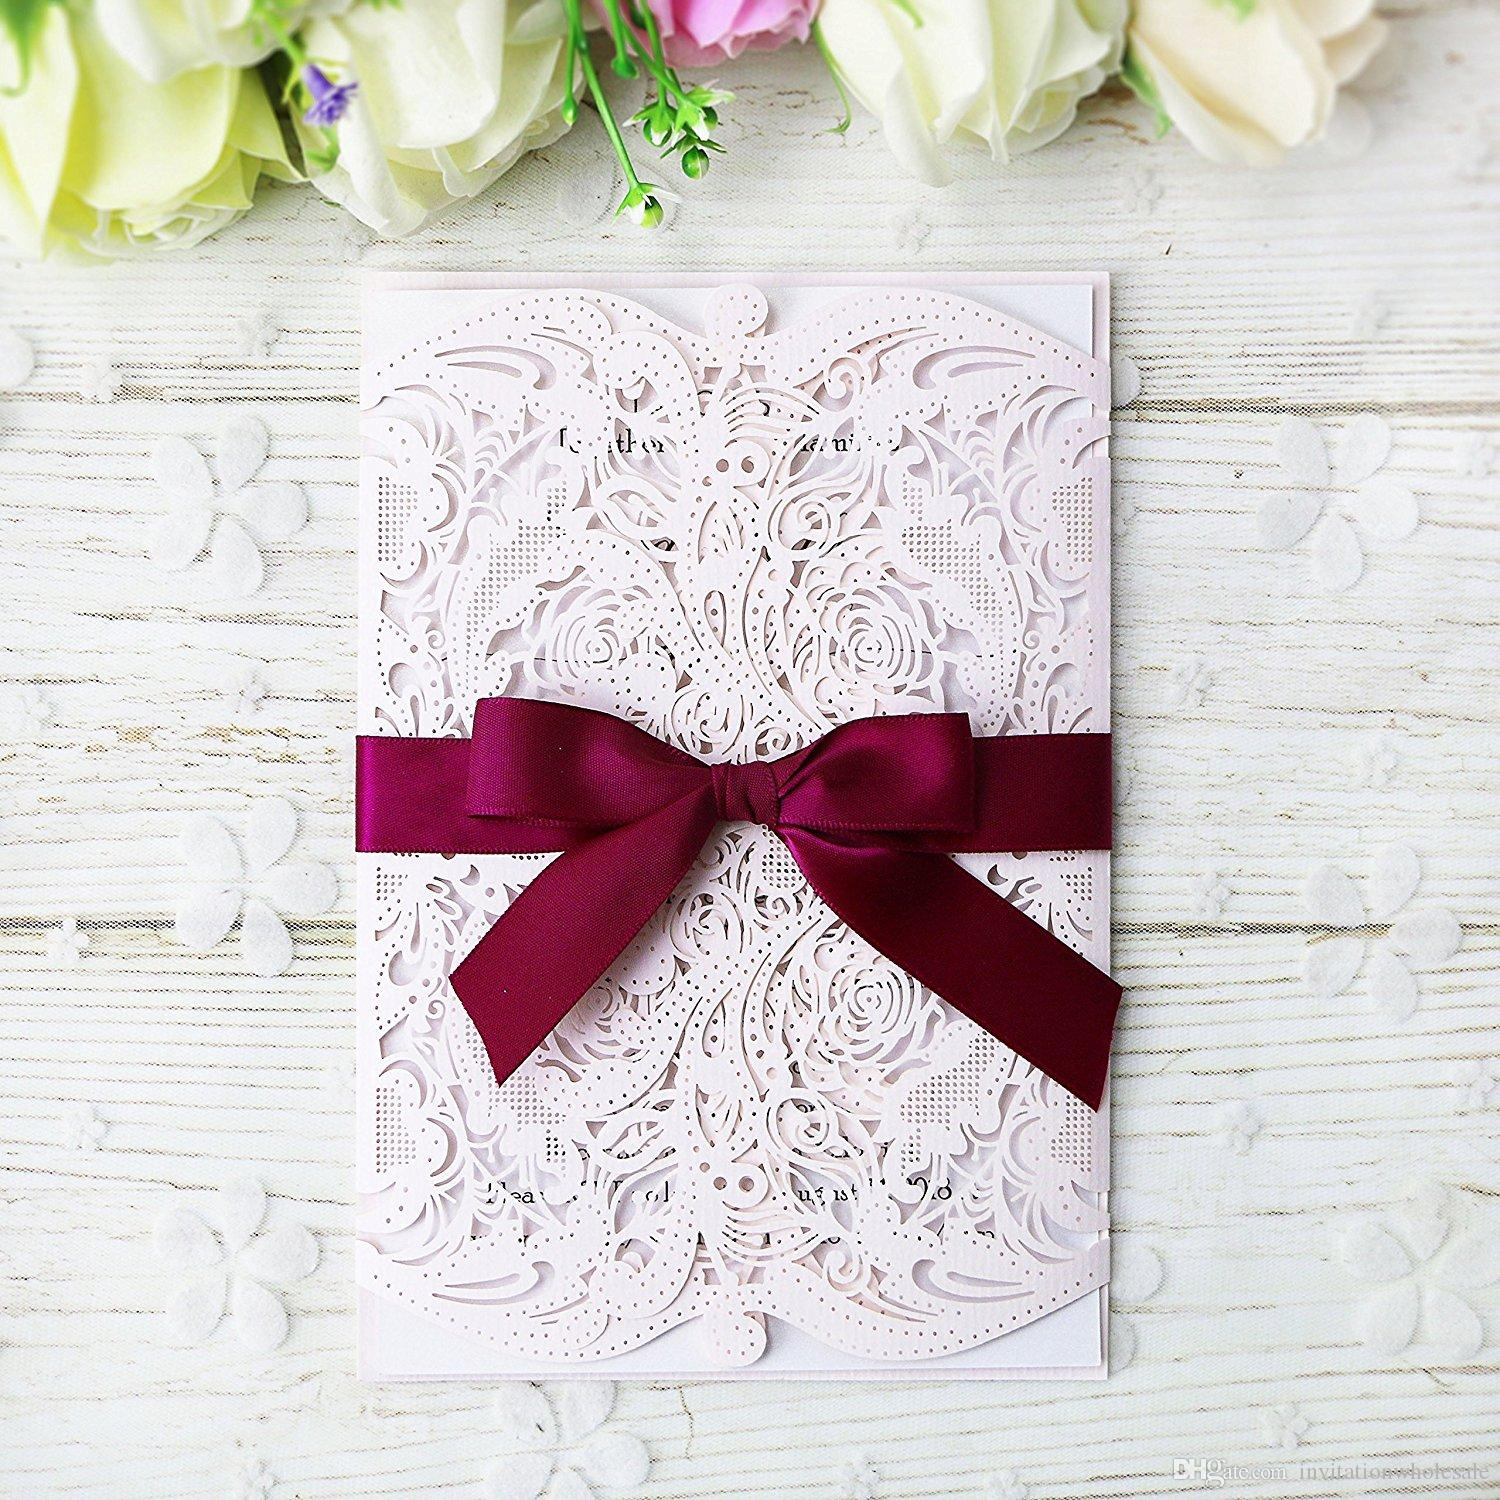 Laser Cut Free Print Invitations Card With Ribbons For Wedding Bridal Shower Engagement Birthday Graduation Invitation Cards Happy Of